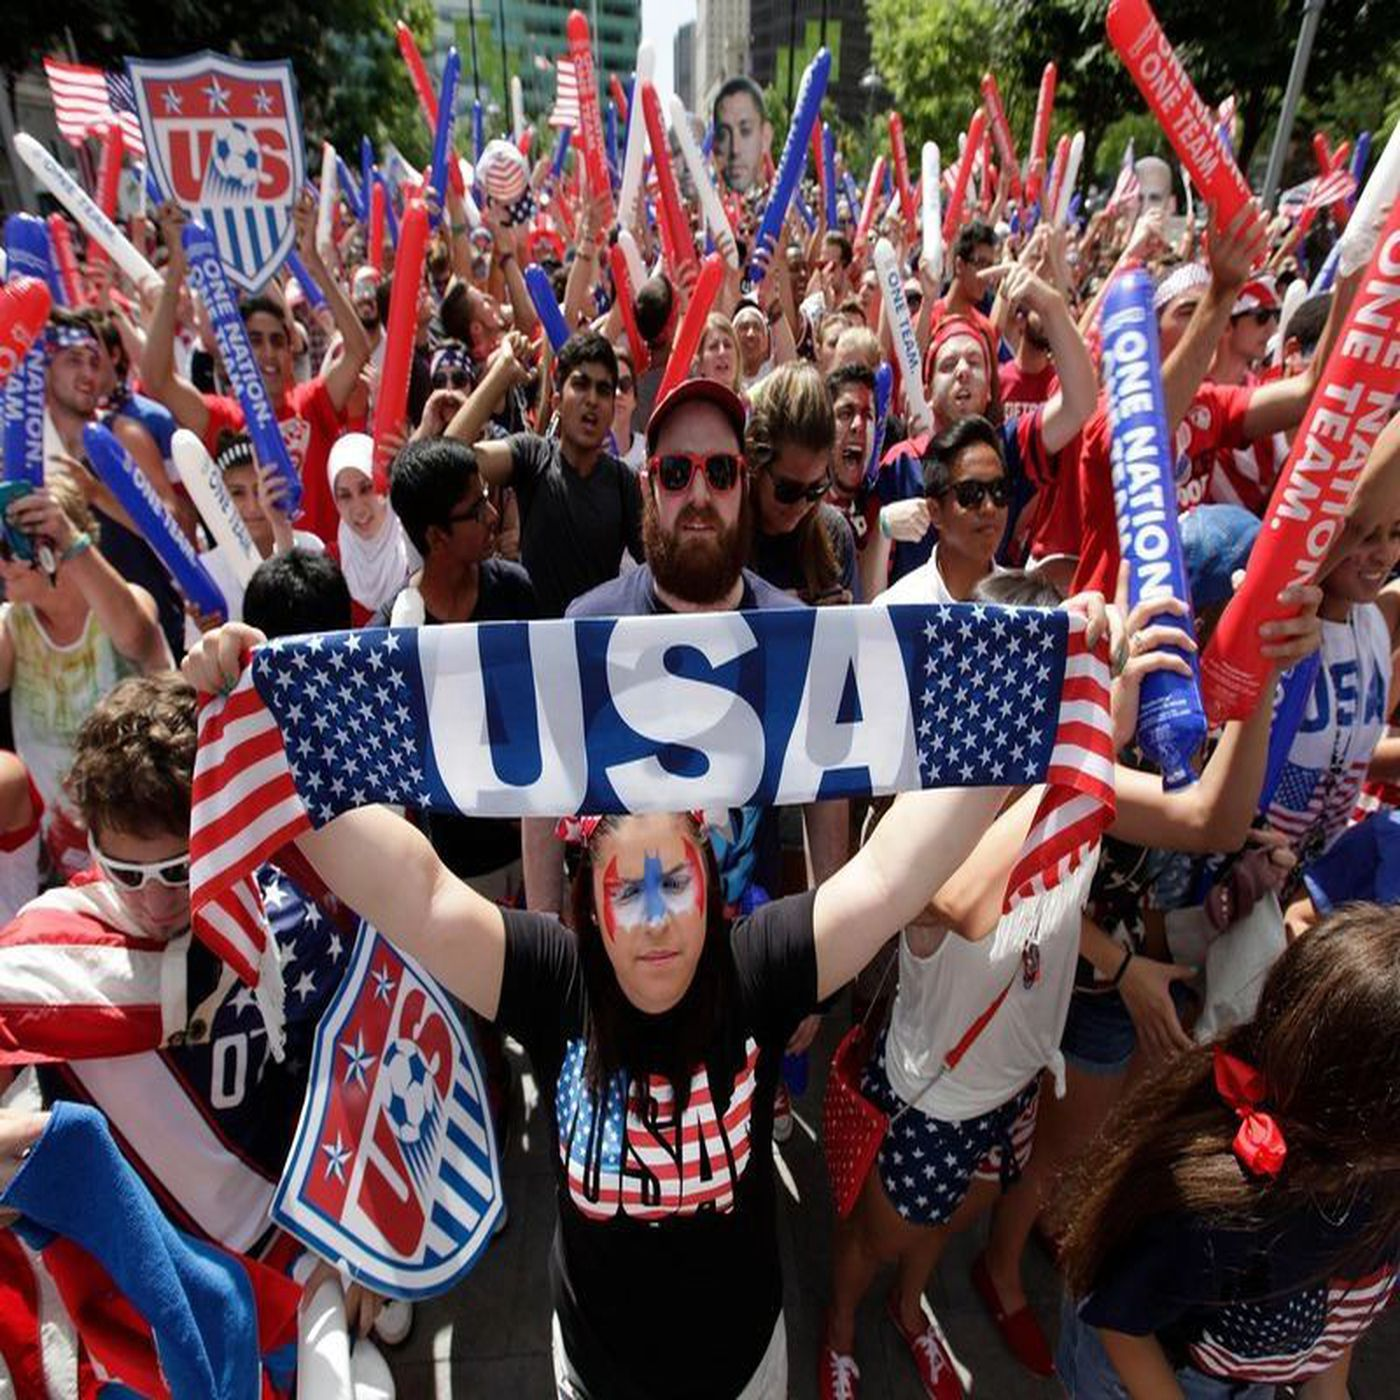 STAND UP FOR THE USA